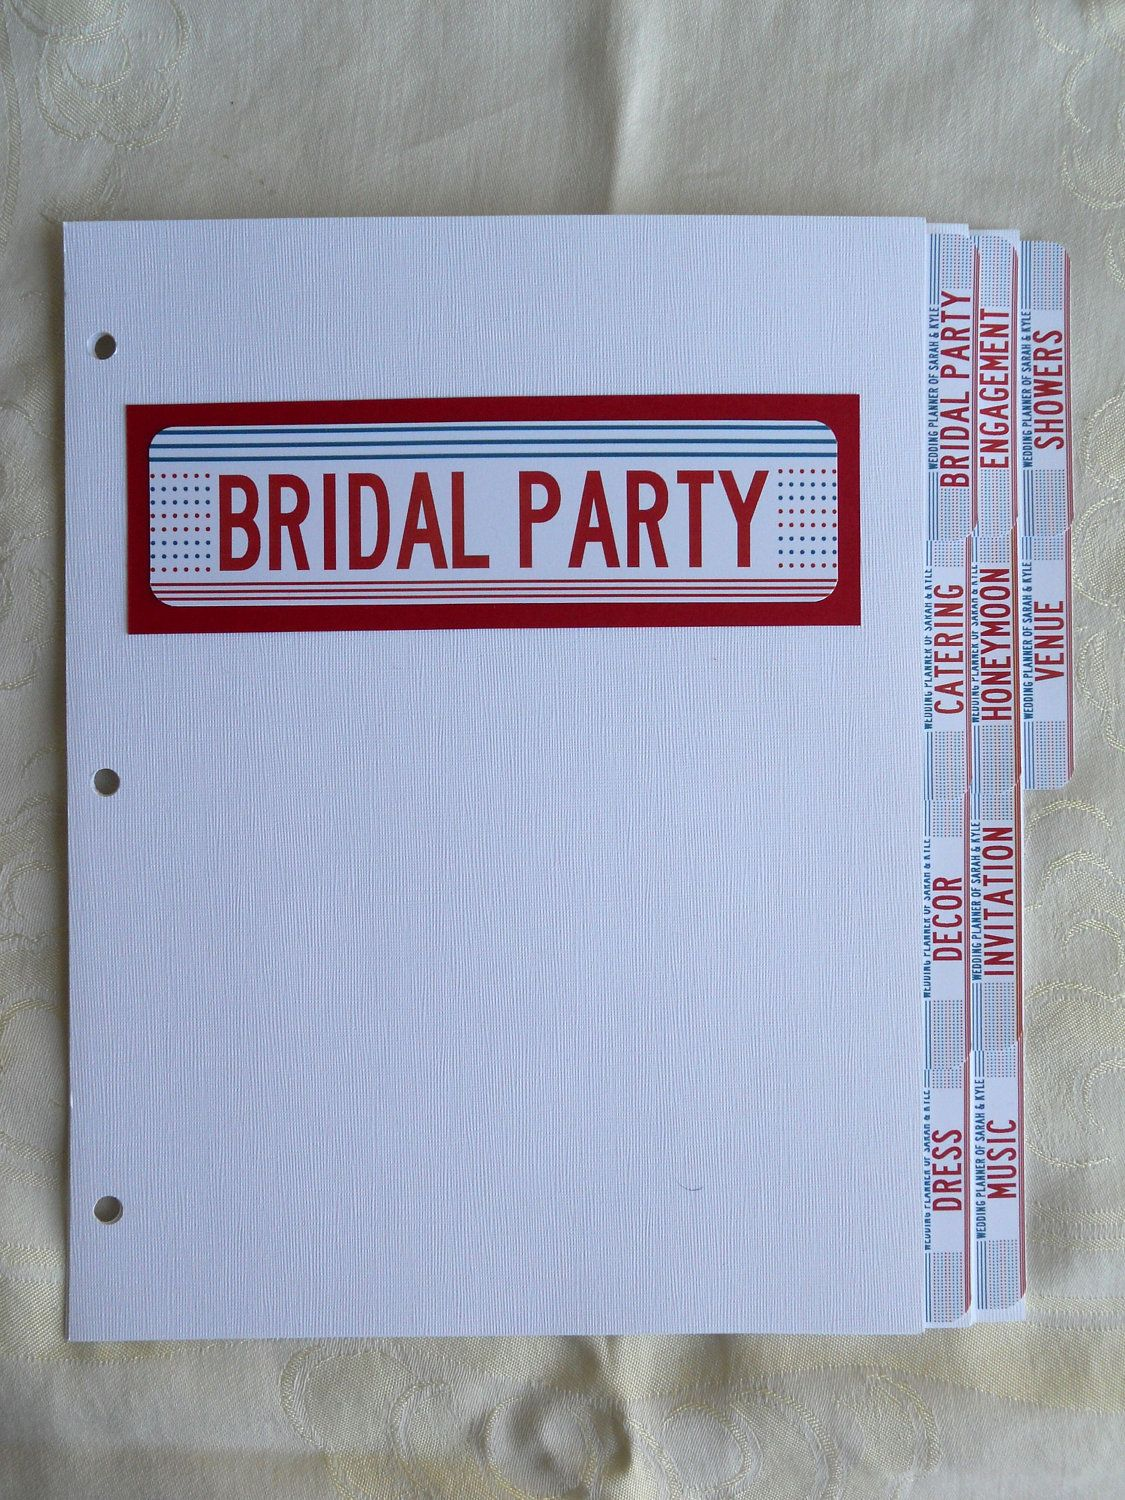 DIY Wedding Binder Tabs Huge Time Saver And Organizer Prevents A Lot Of Headaches